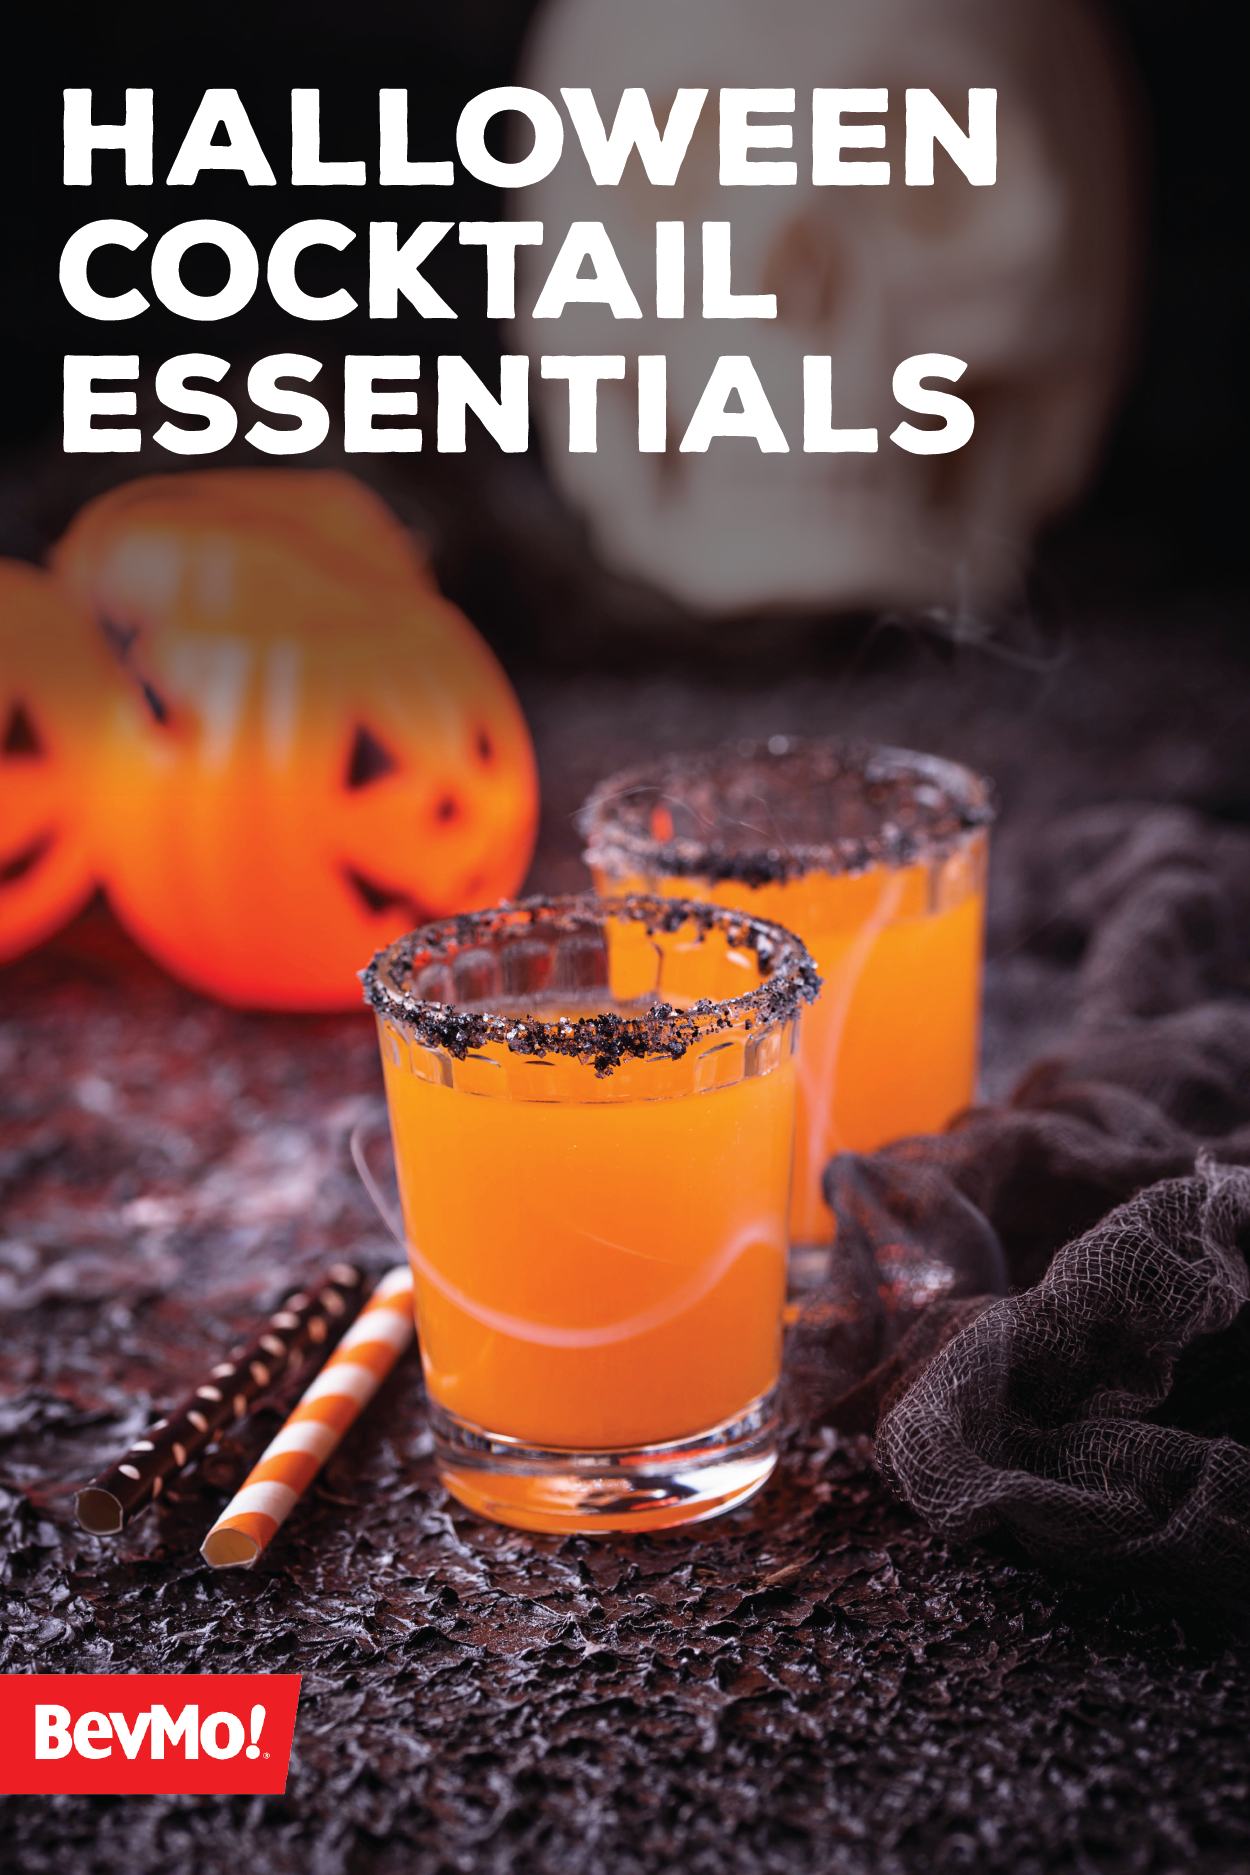 with these halloween cocktail essentials from bevmo!, you've got